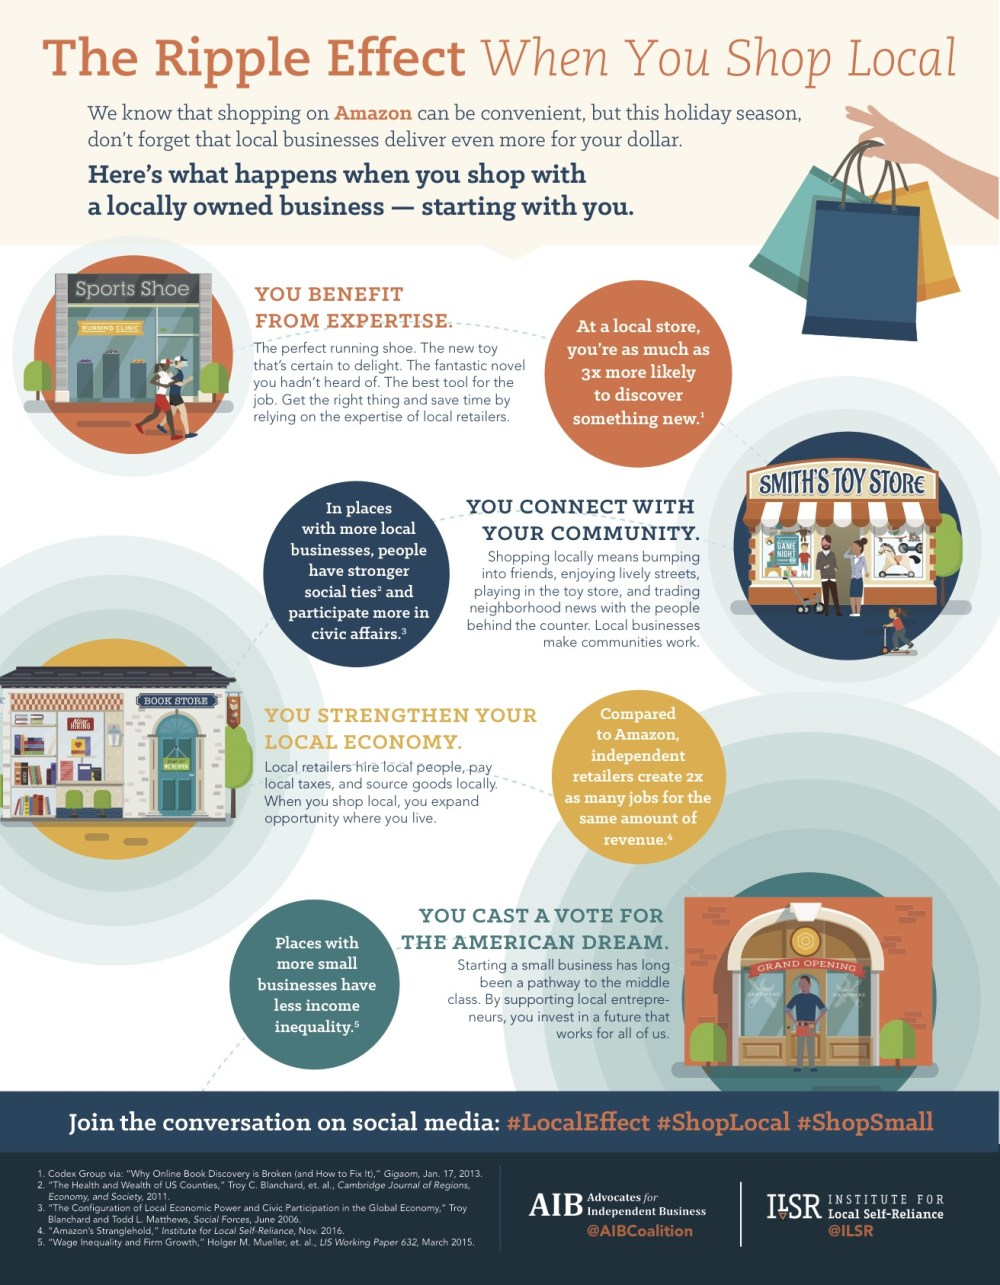 Ripple effect of shopping locally